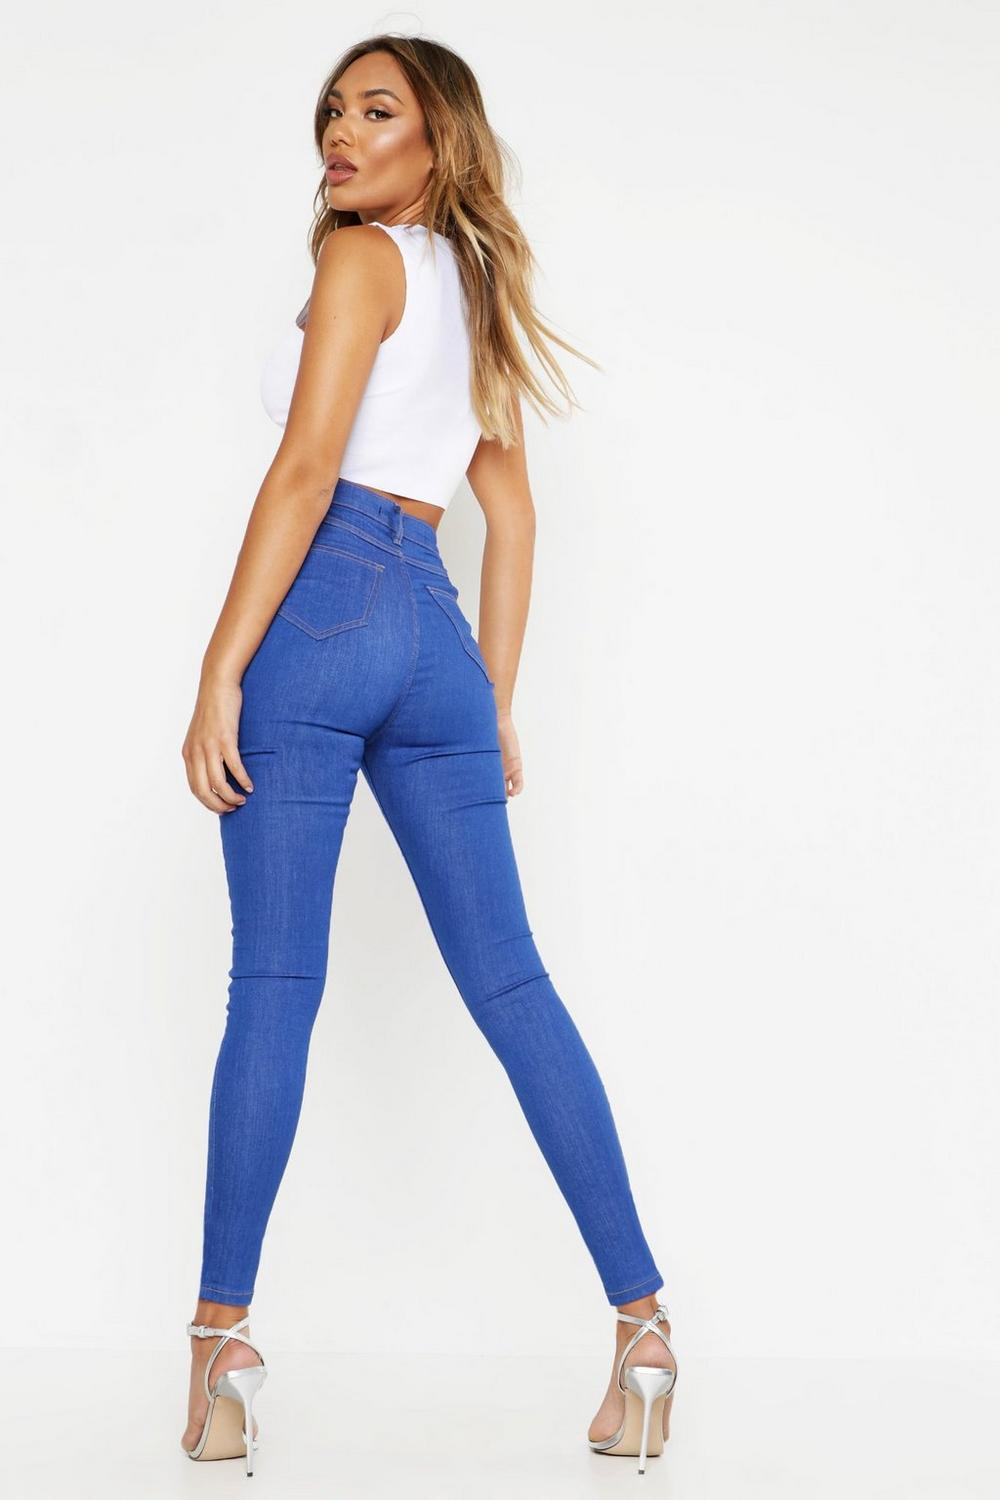 0fdbab82283 ... Buttshaper Stretch Skinny Jeans. Hover to zoom